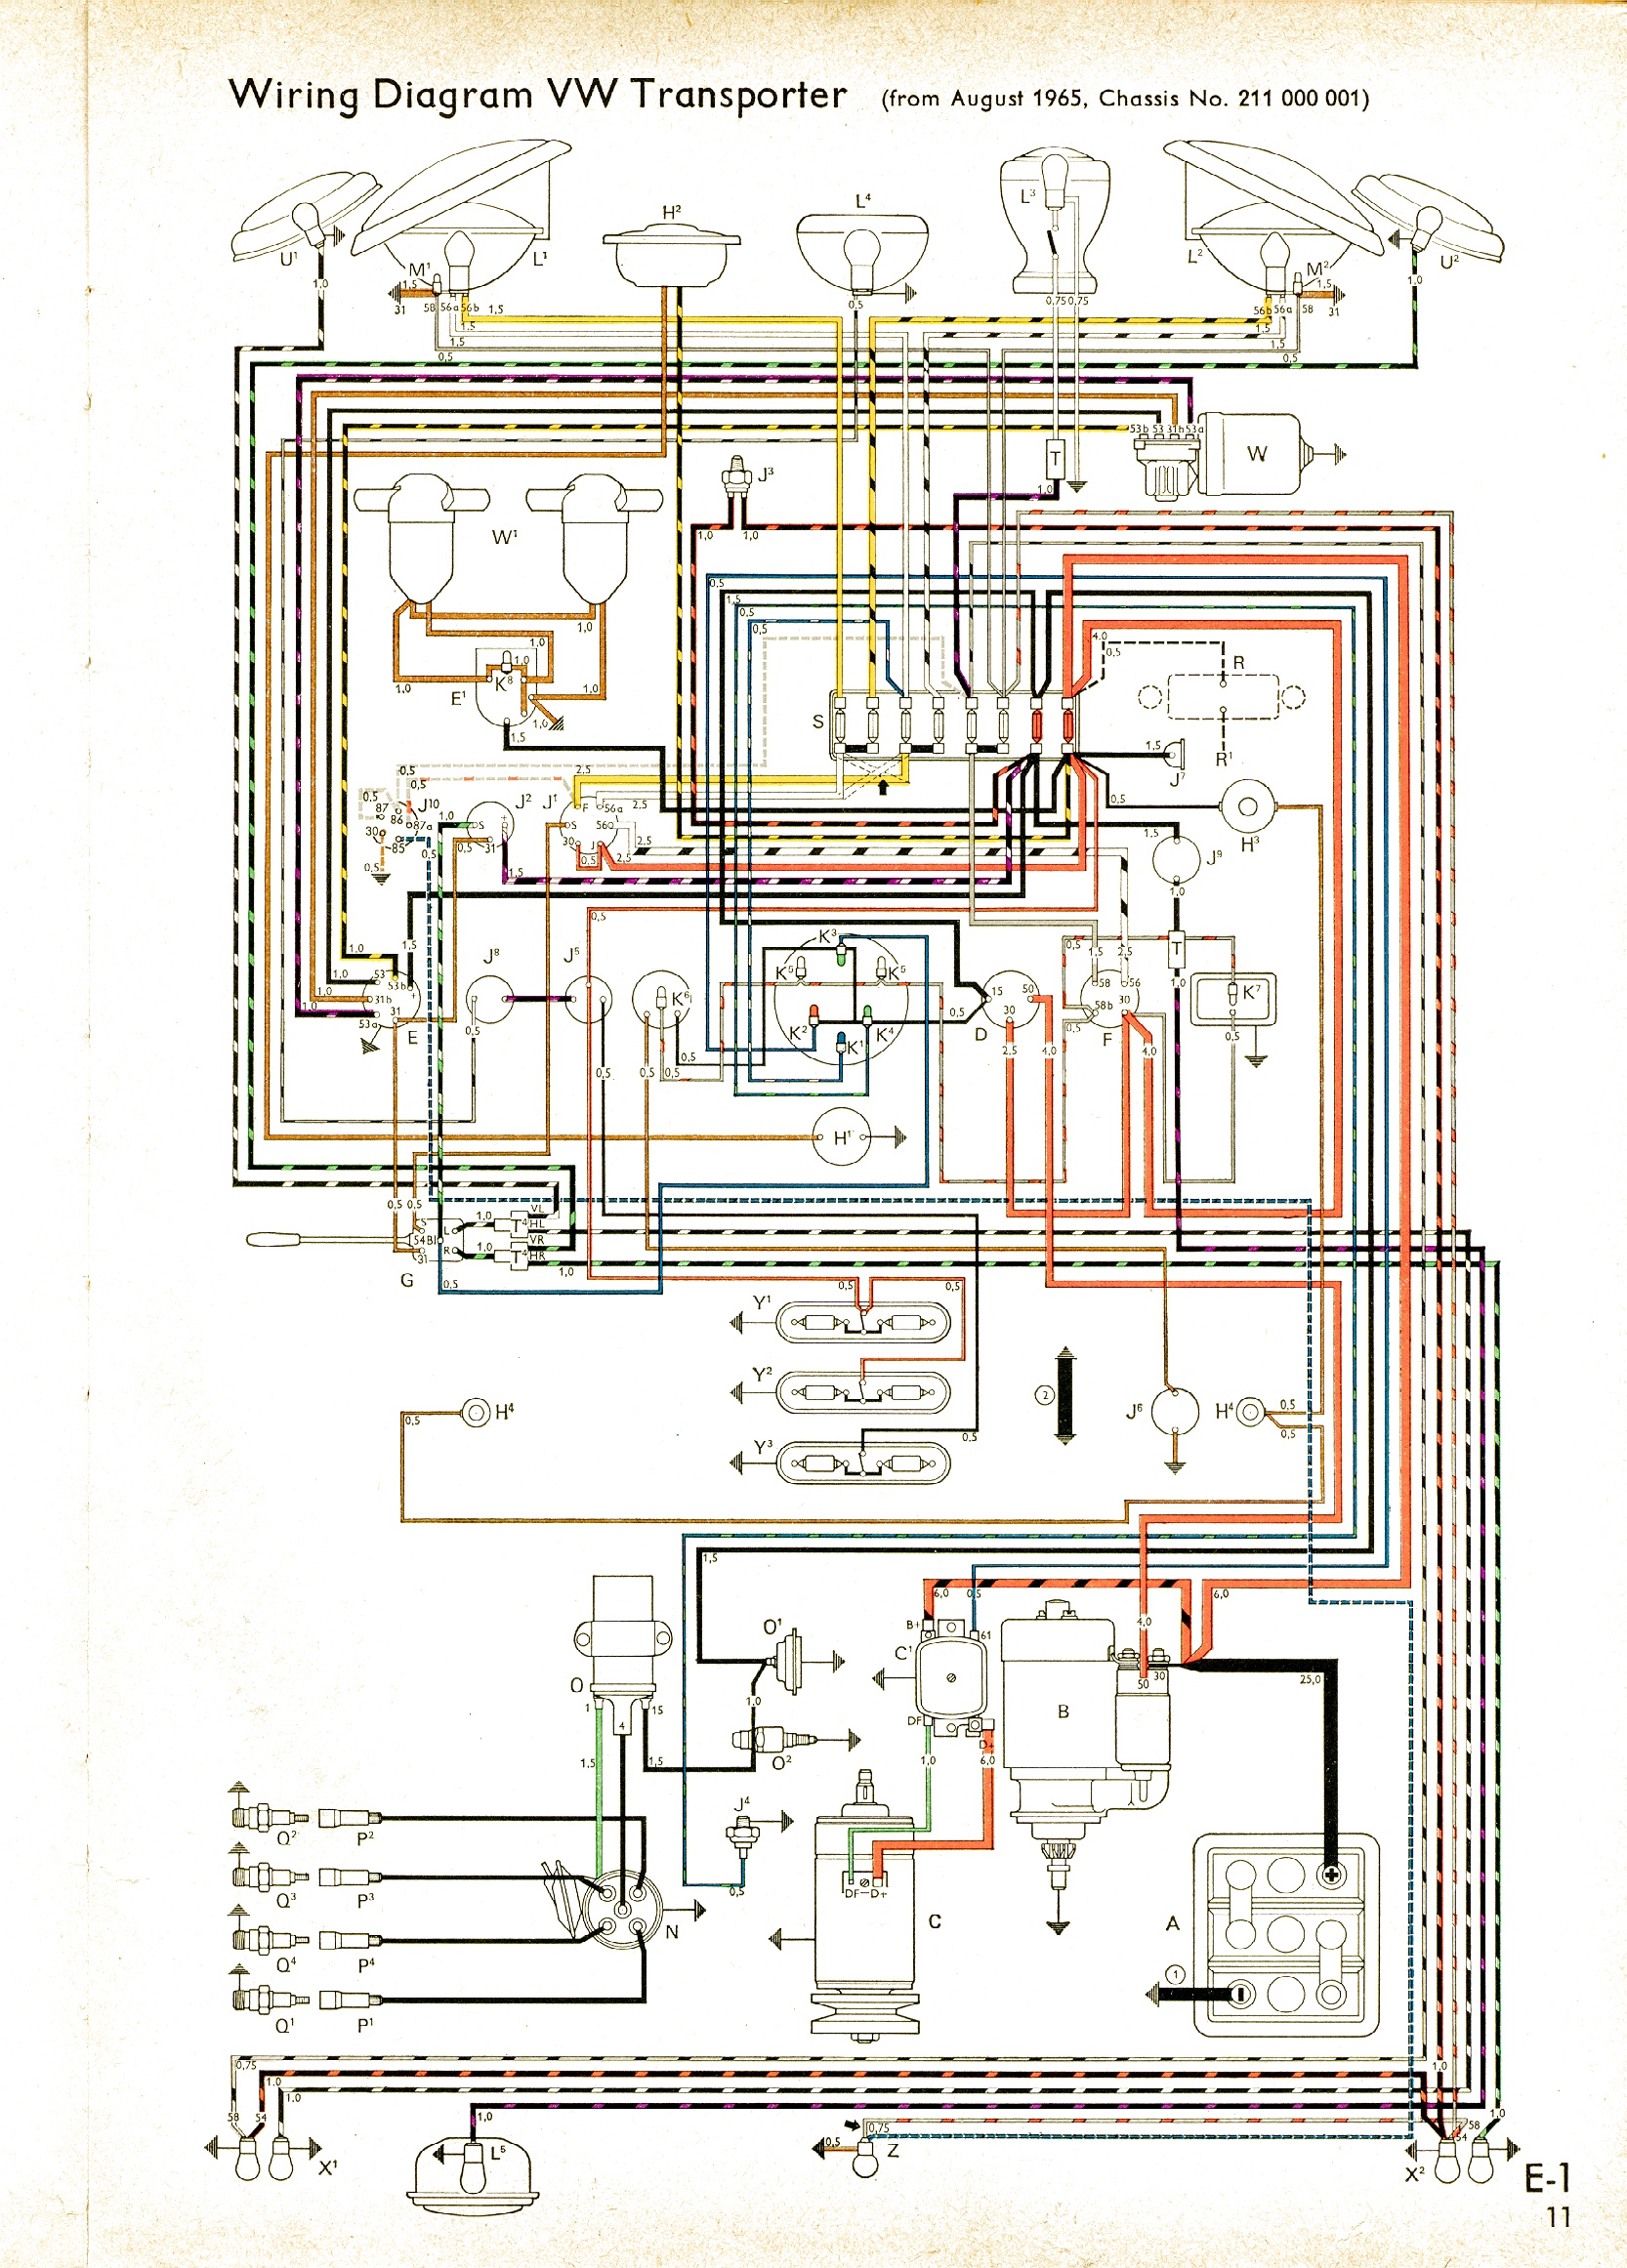 bus 65 bus wiring diagram vw wiring harness diagram \u2022 wiring diagrams j 1971 vw bus wiring diagram at bakdesigns.co